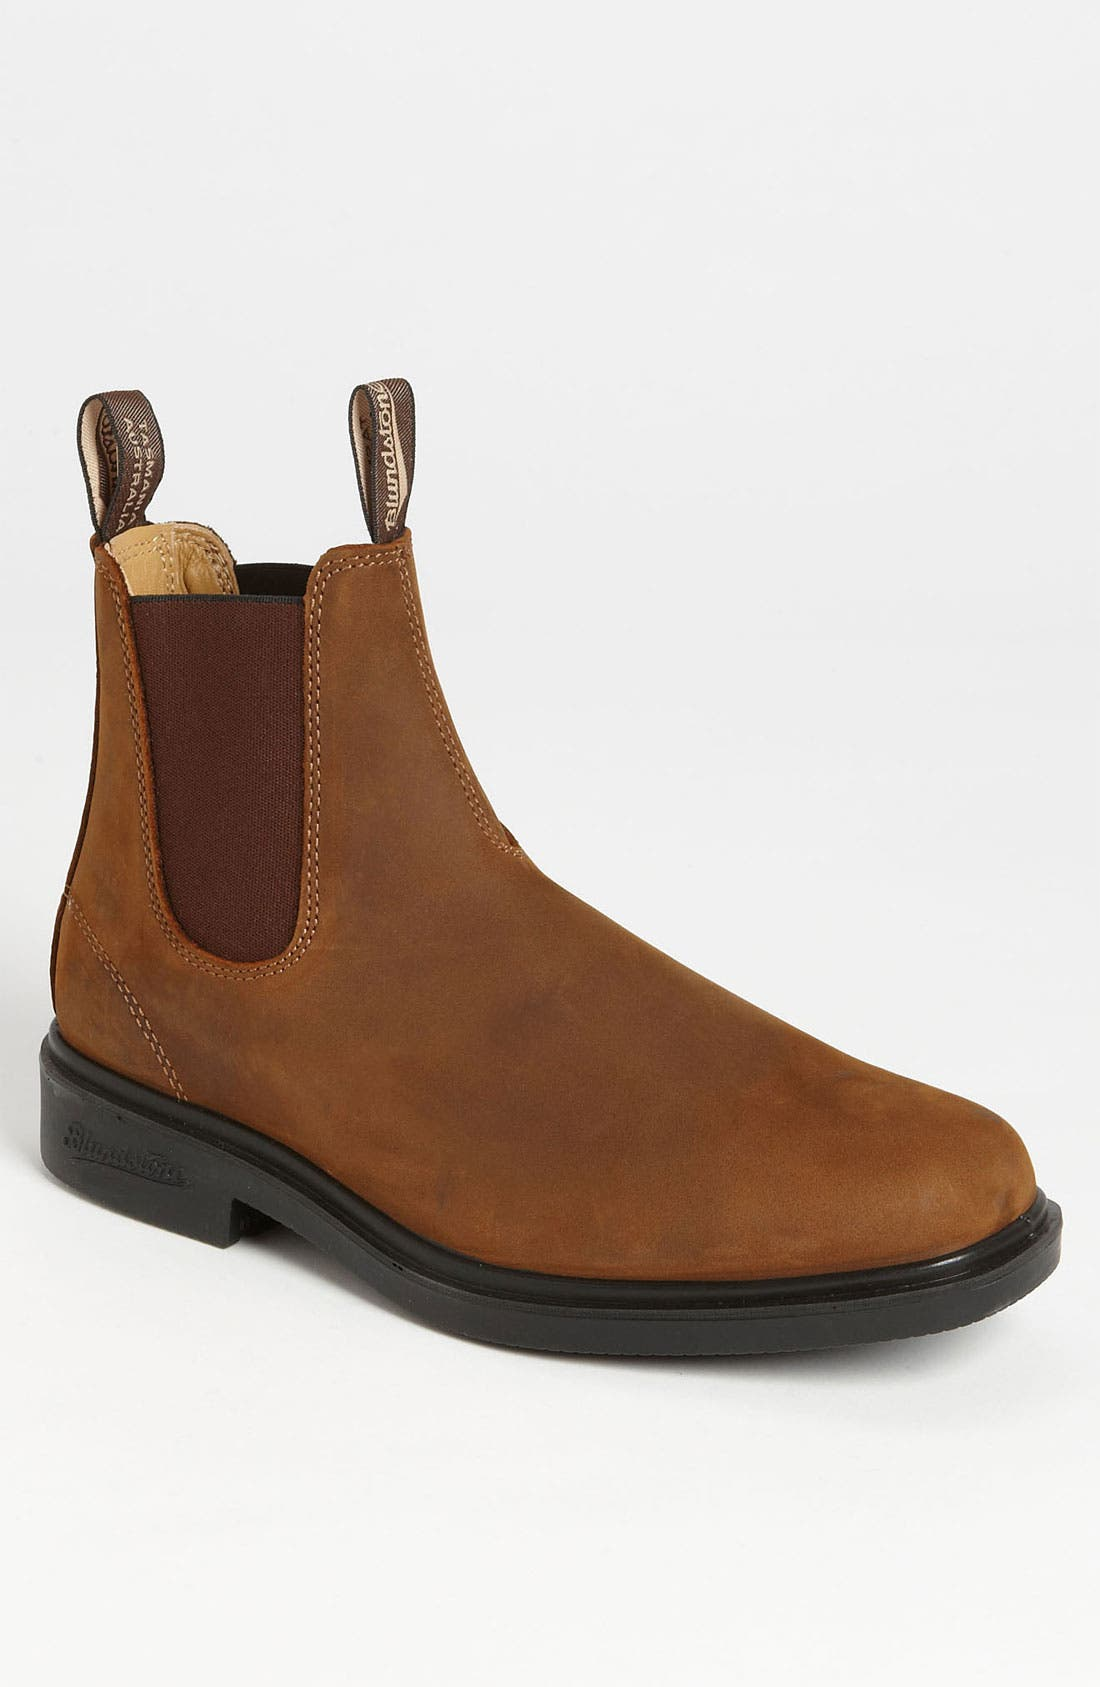 Alternate Image 1 Selected - Blundstone Footwear Chelsea Boot (Online Only)